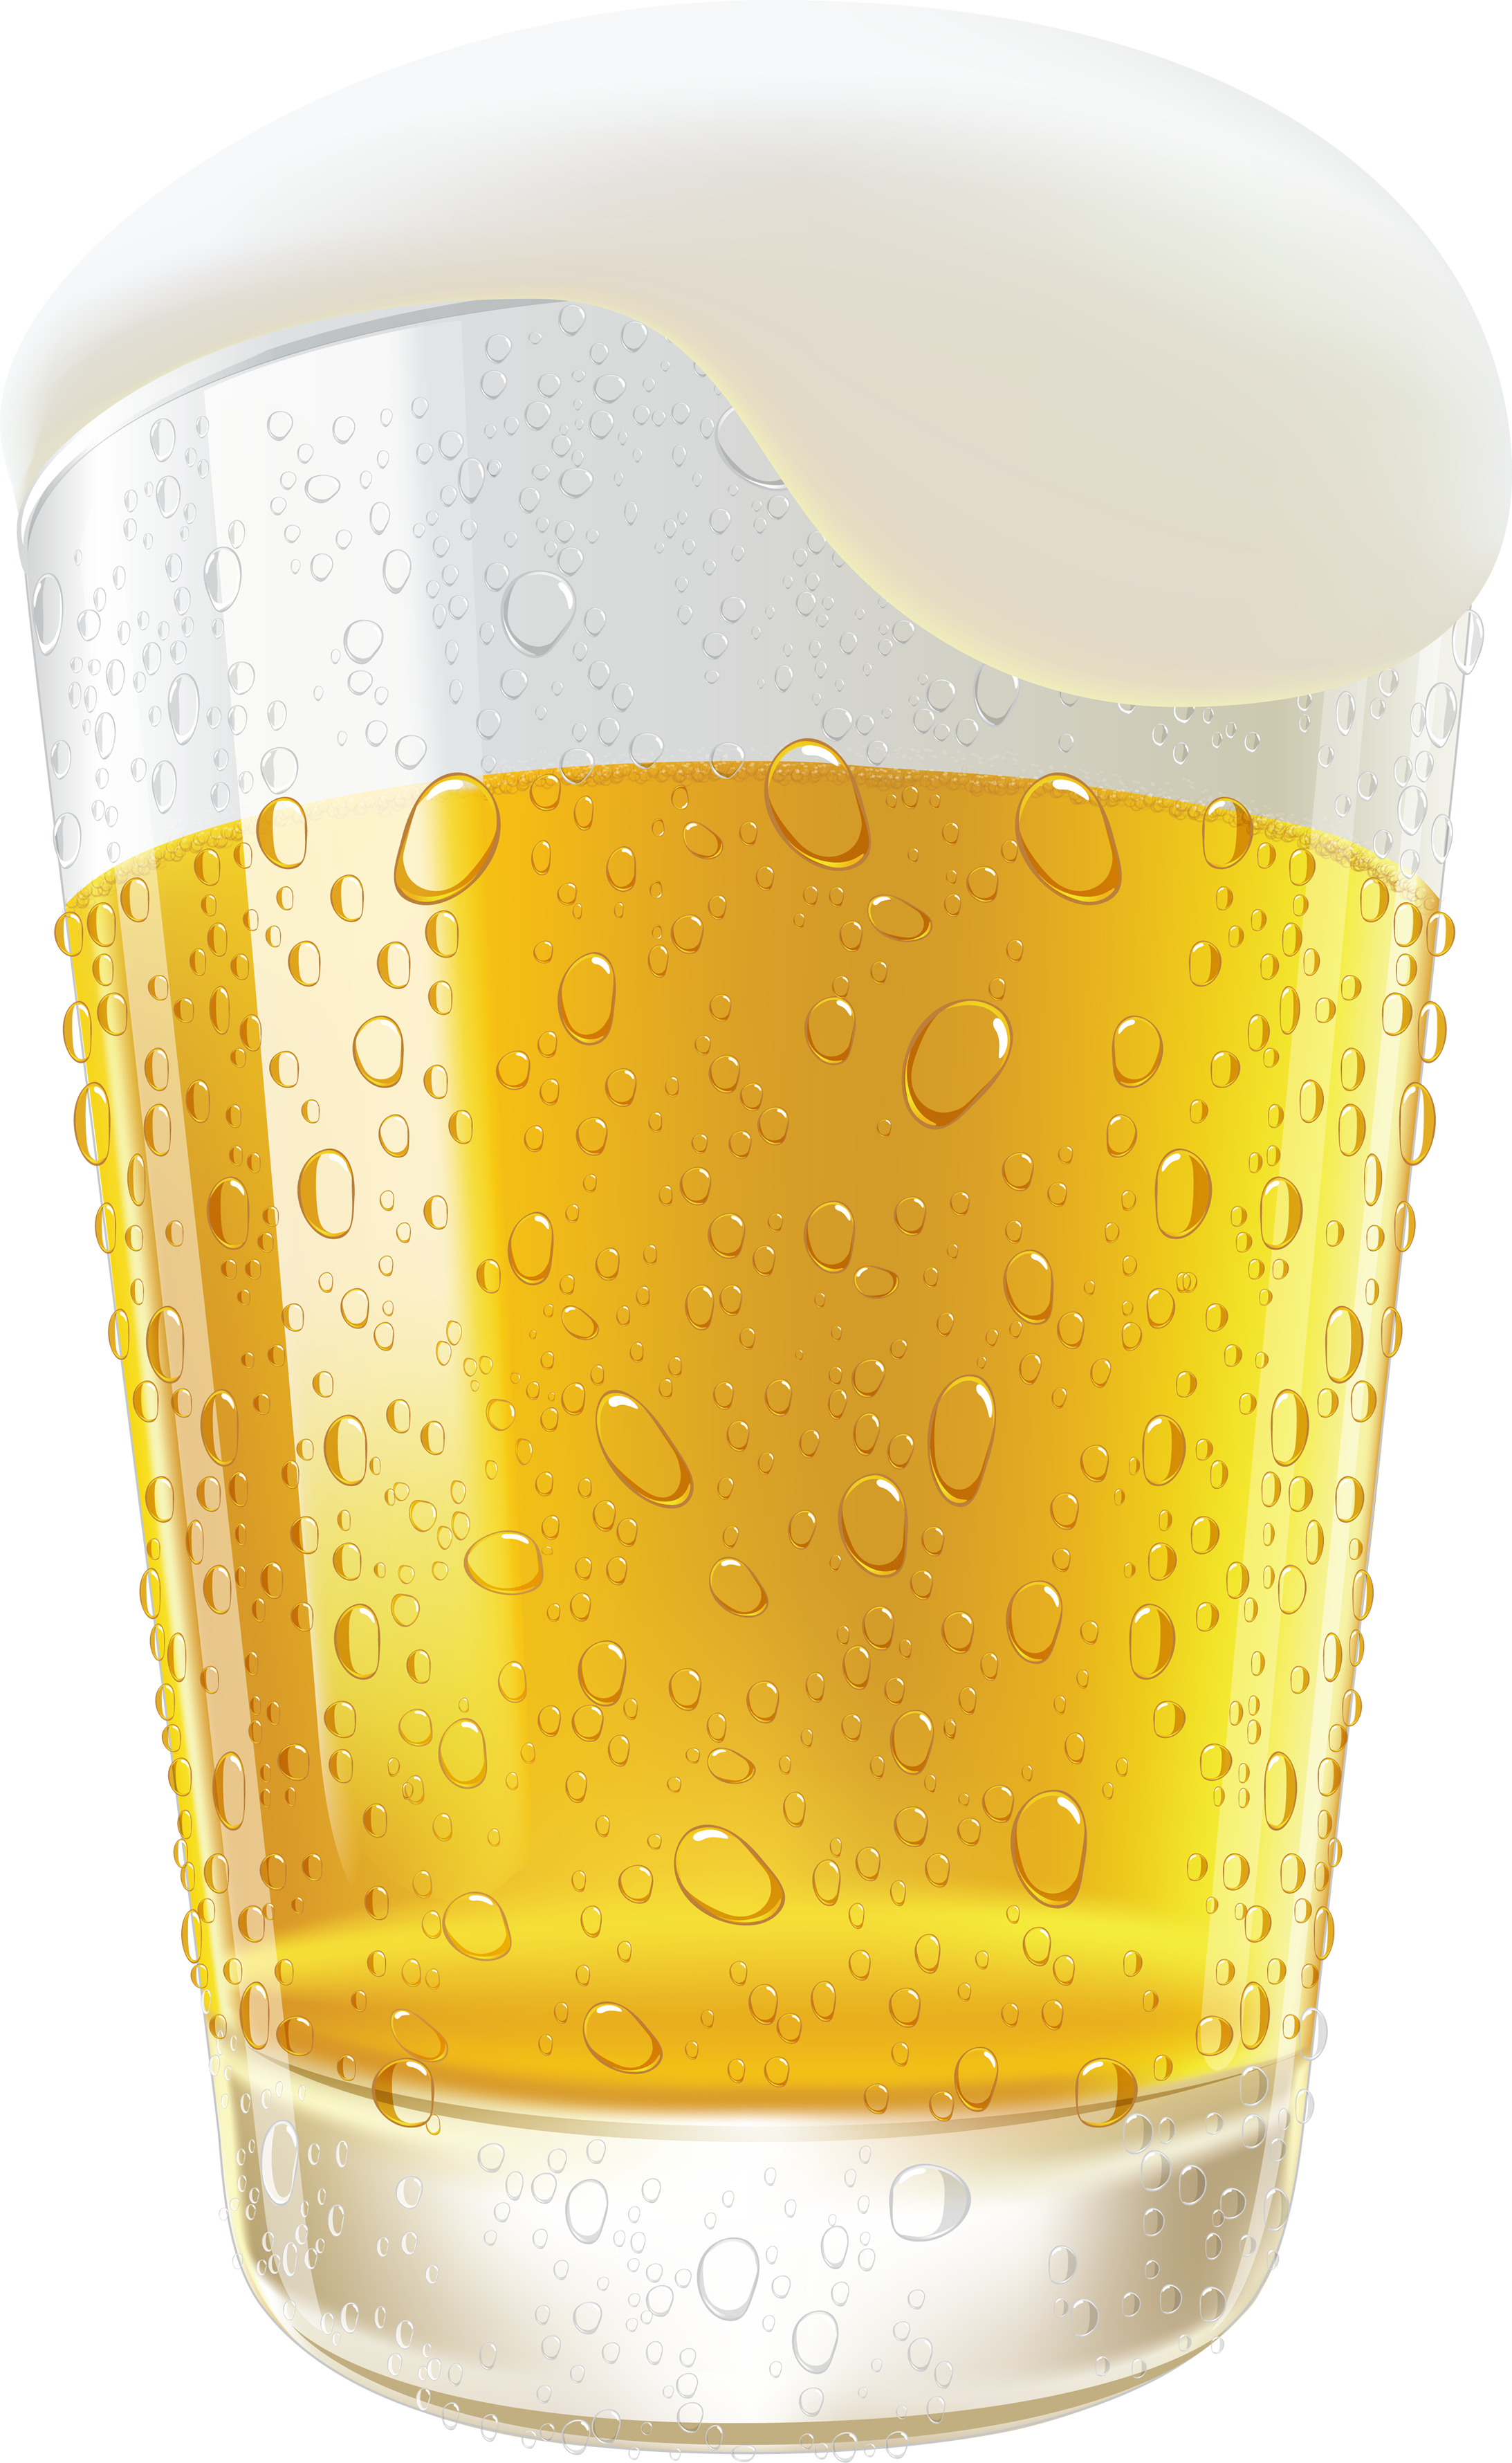 Sun holding beer clipart picture freeuse library Glass of Beer Twelve | Isolated Stock Photo by noBACKS.com picture freeuse library